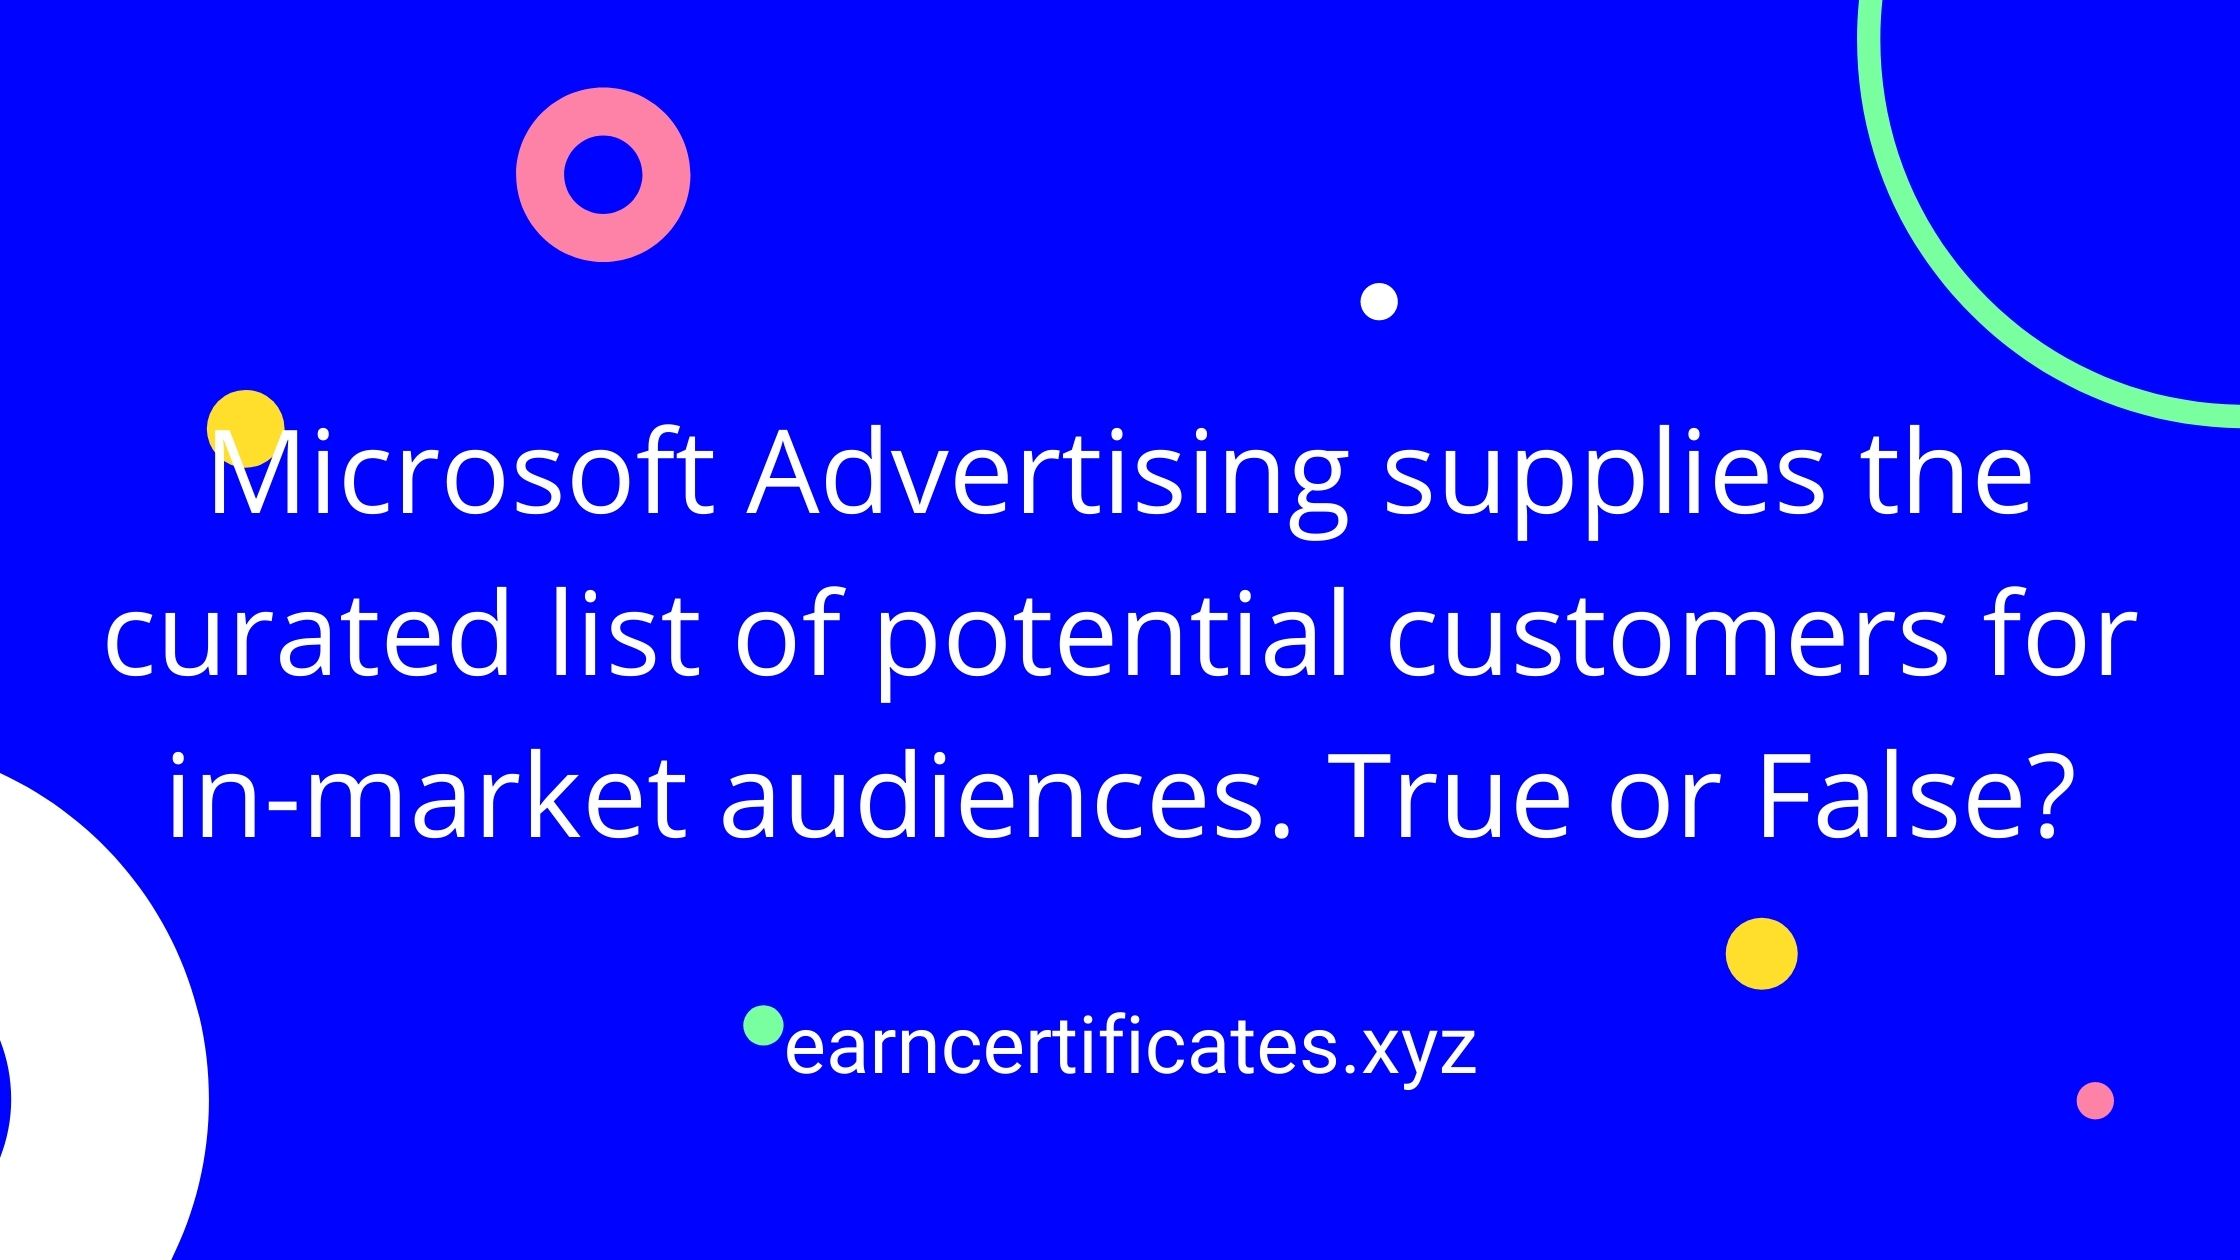 Microsoft Advertising supplies the curated list of potential customers for in-market audiences. True or False?